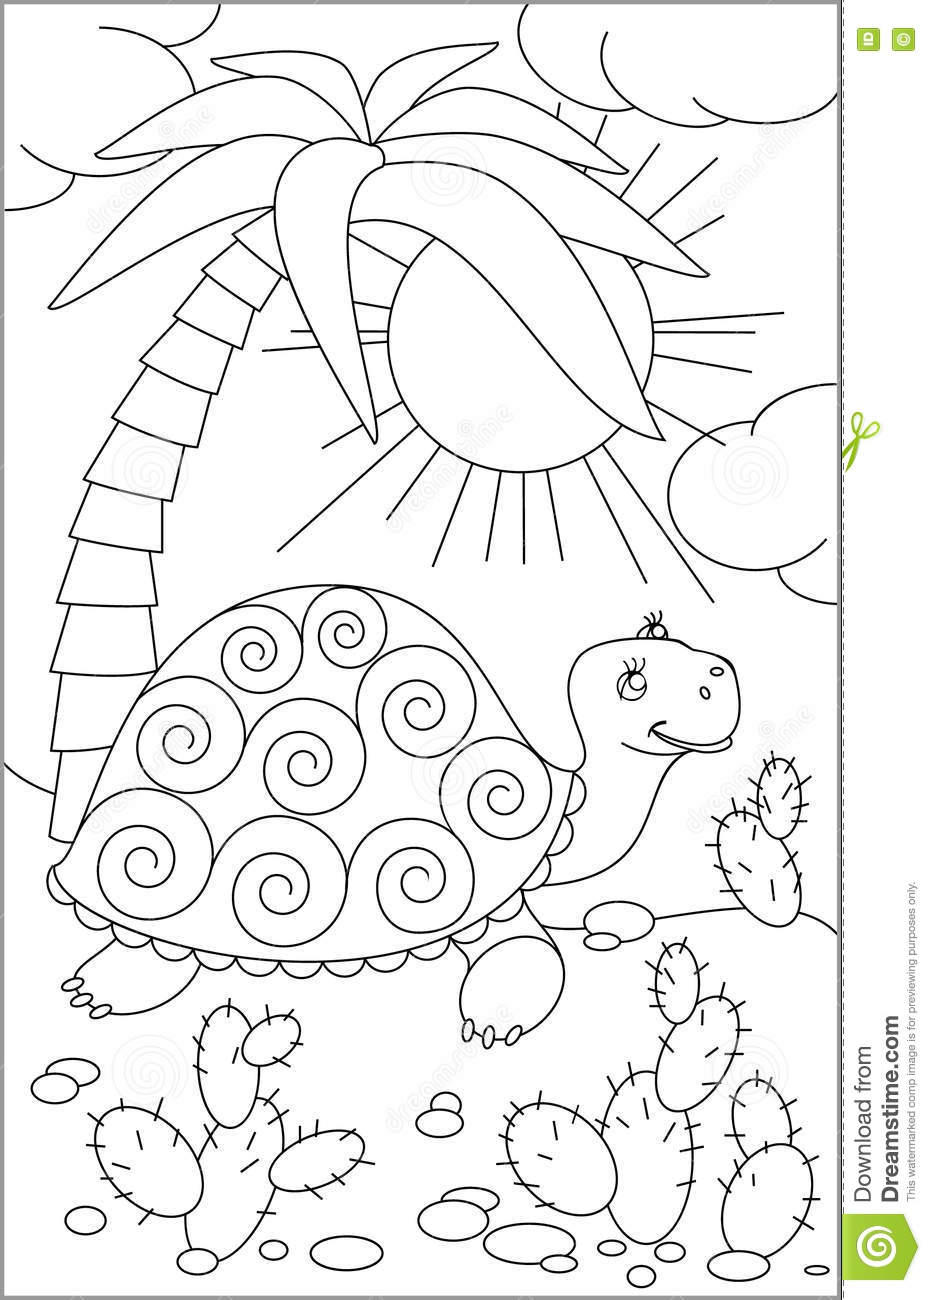 Page With Black And White Drawing Of Turtle For Coloring